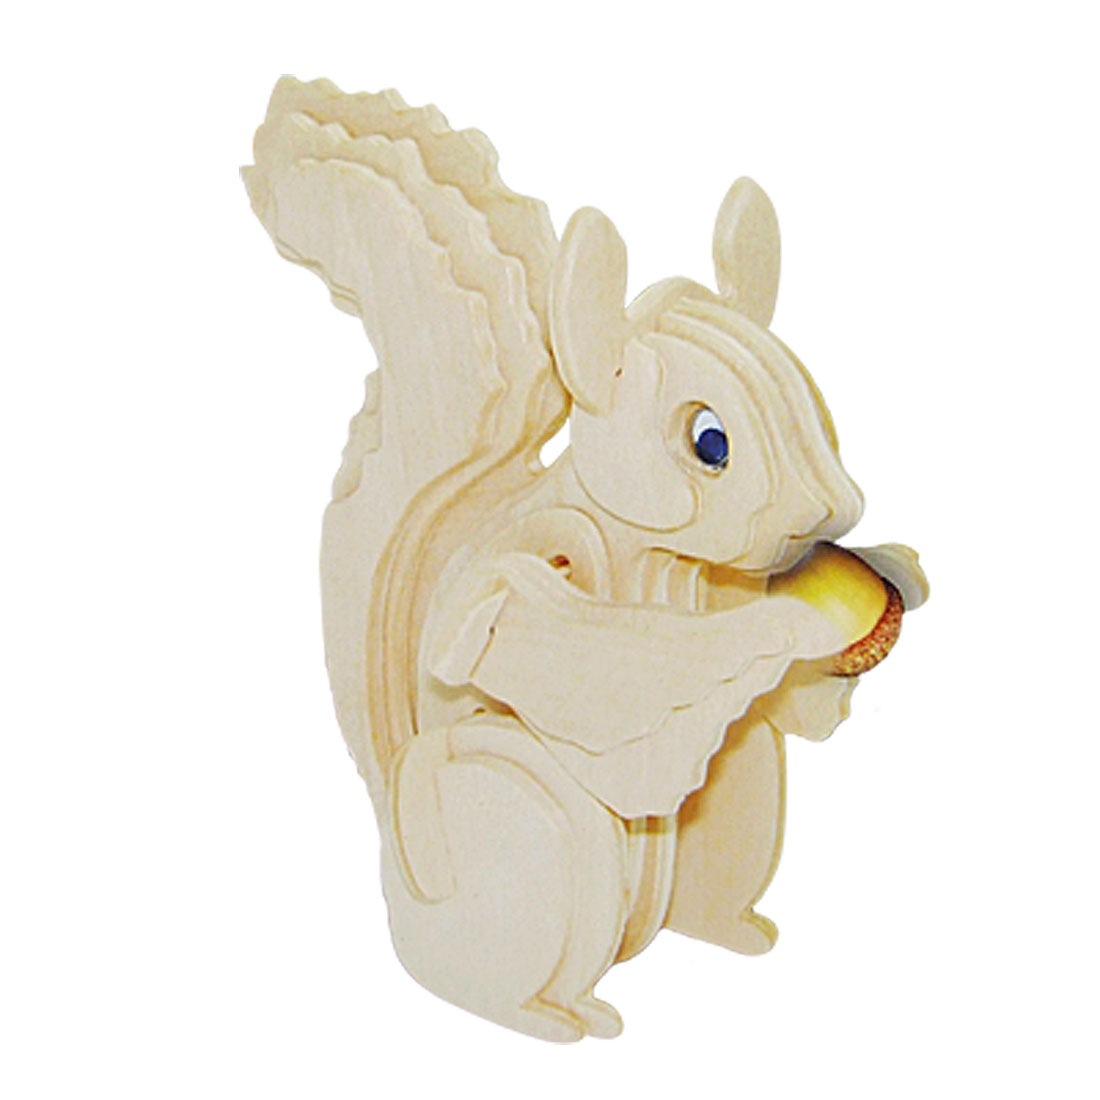 Squirrel Model Woodcraft Construction Kit 3D Puzzle Toy